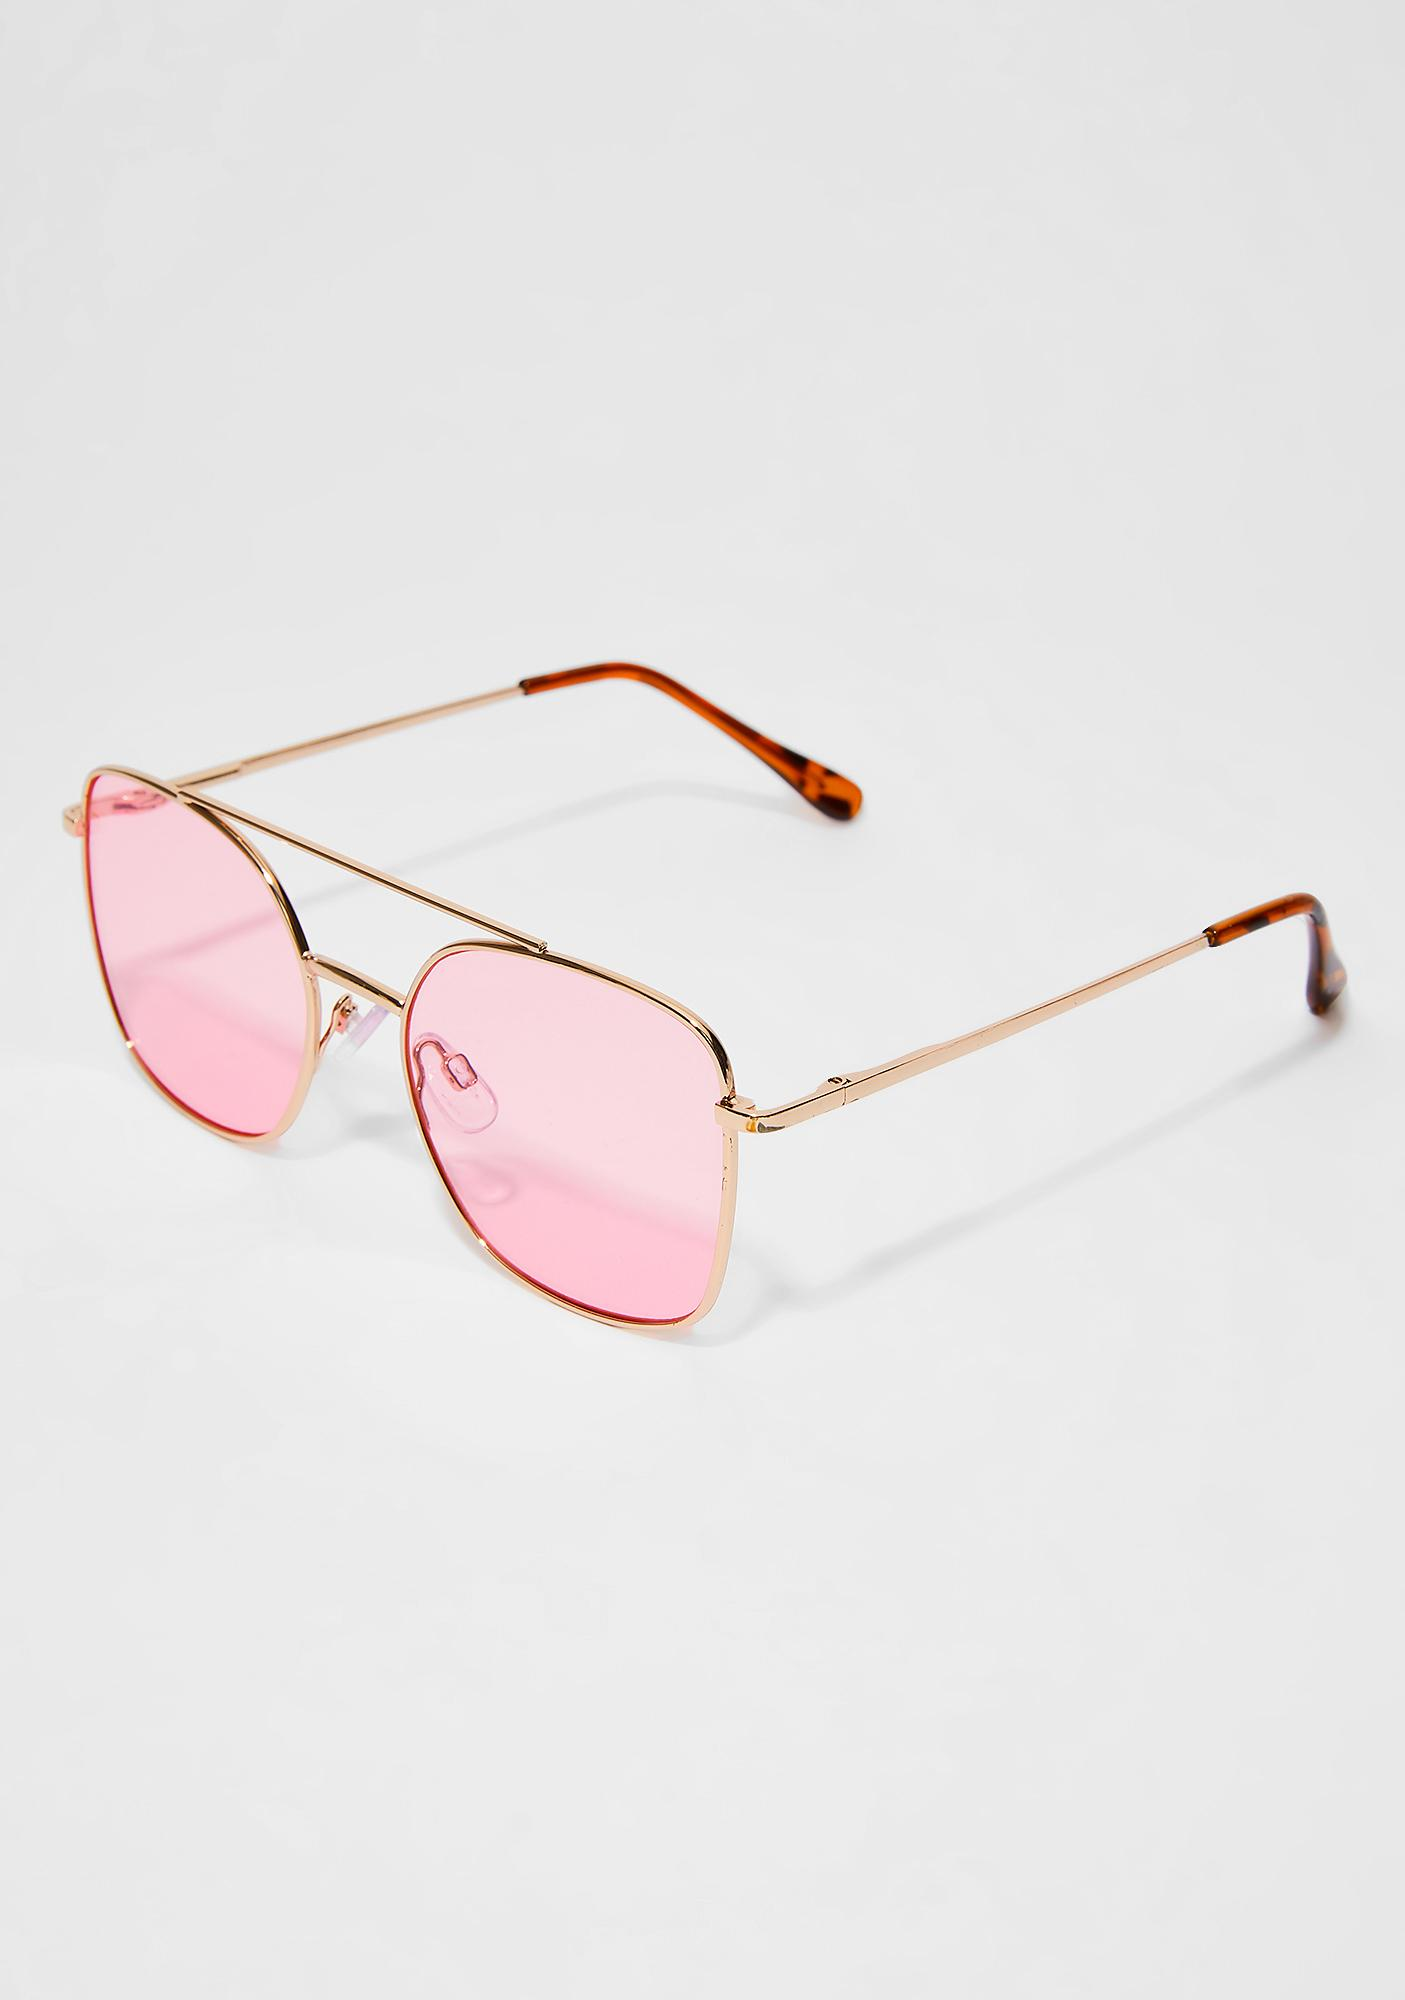 La Vie En Rose Sunglasses